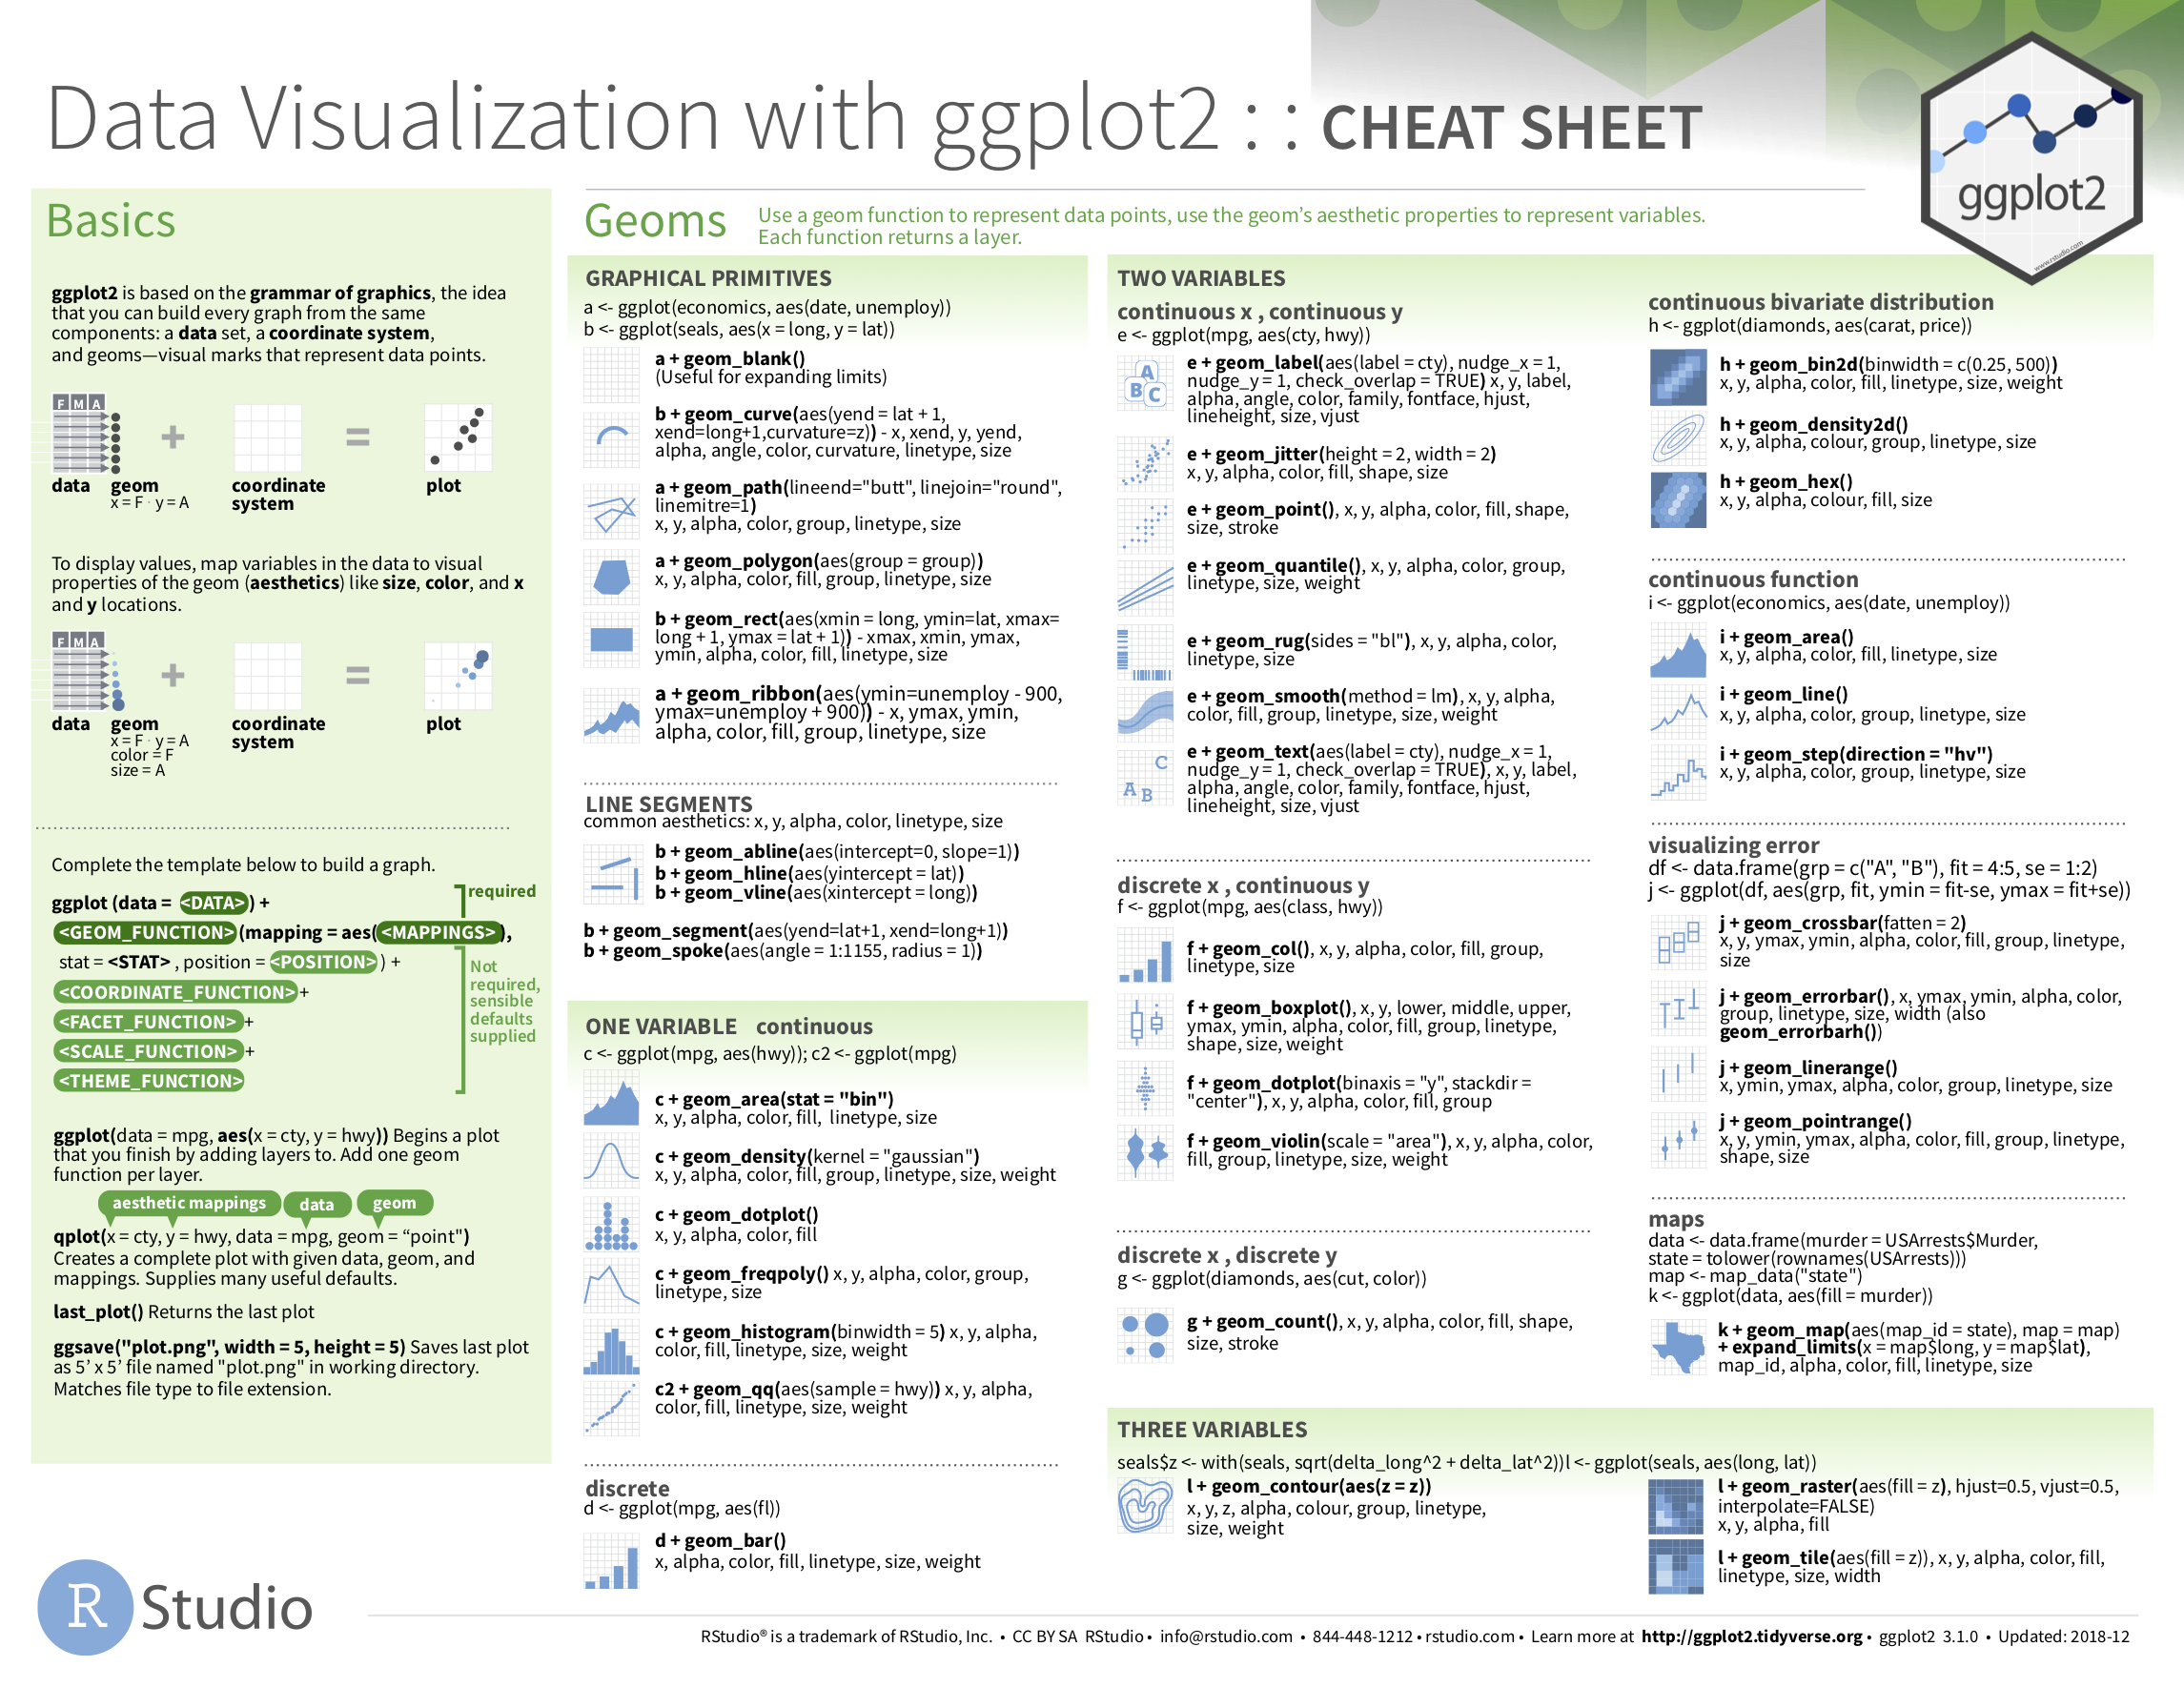 Data Visualization with ggplot2 cheatsheet.